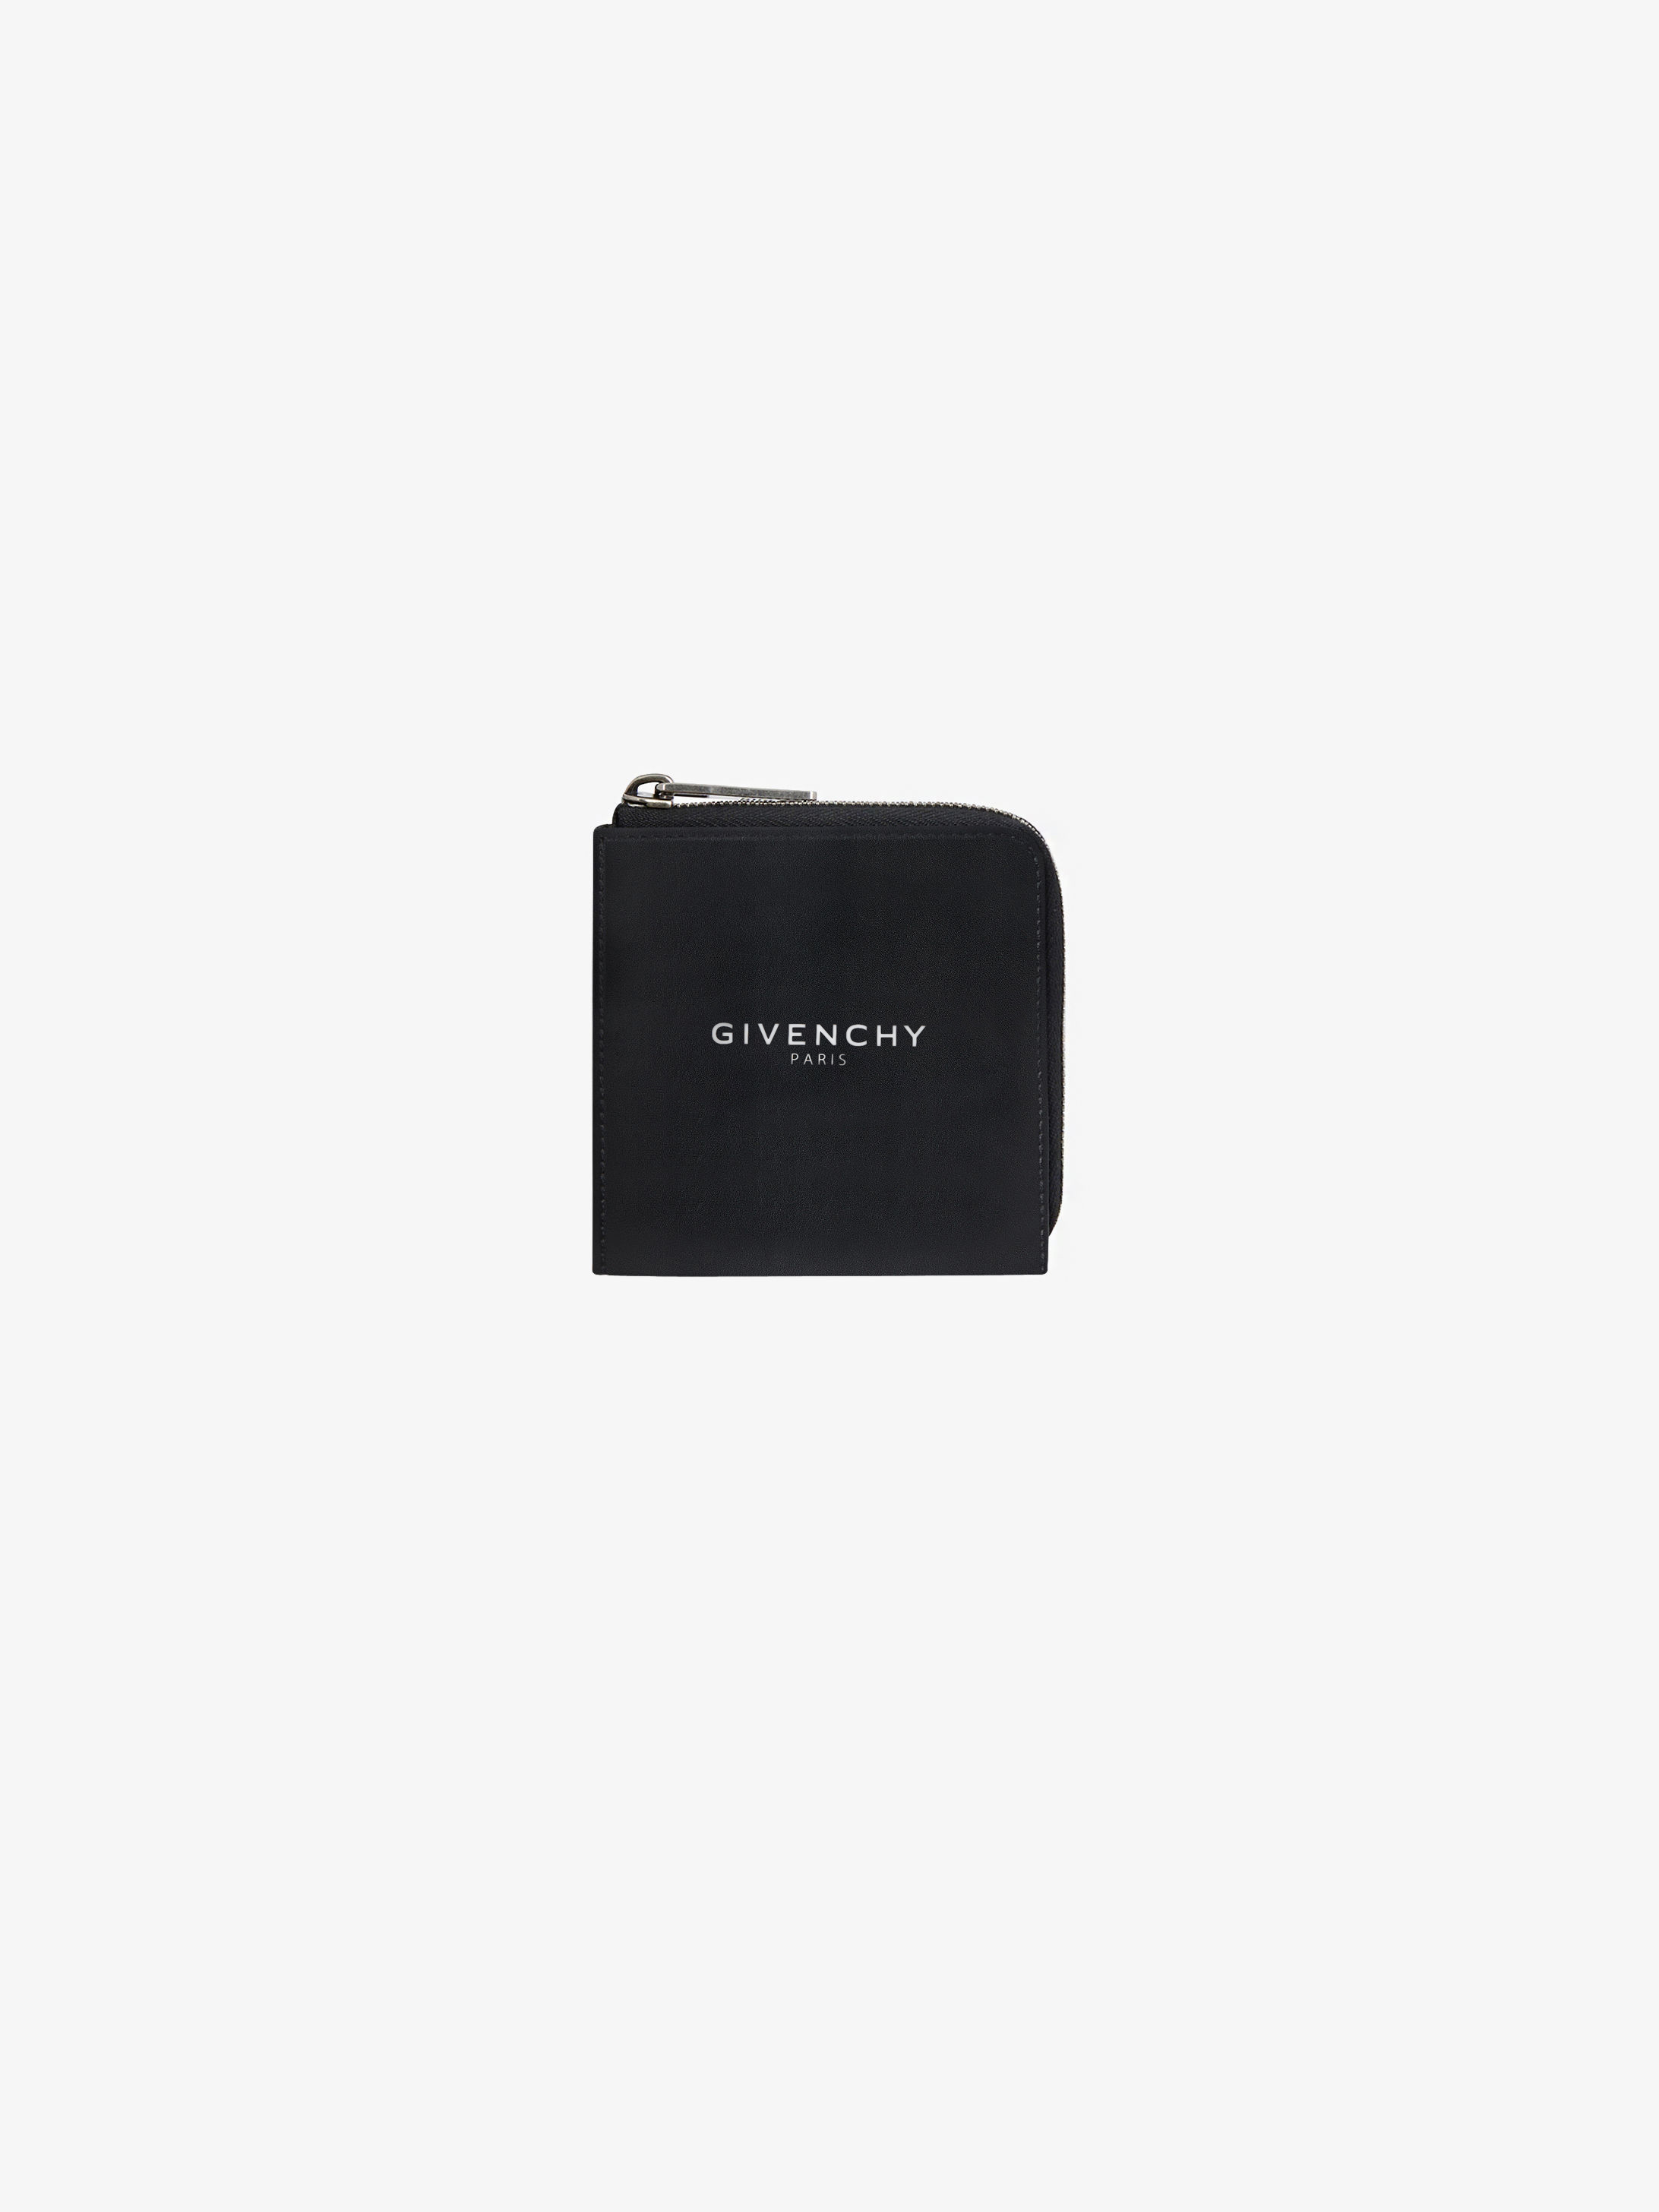 GIVENCHY PARIS square zipped wallet